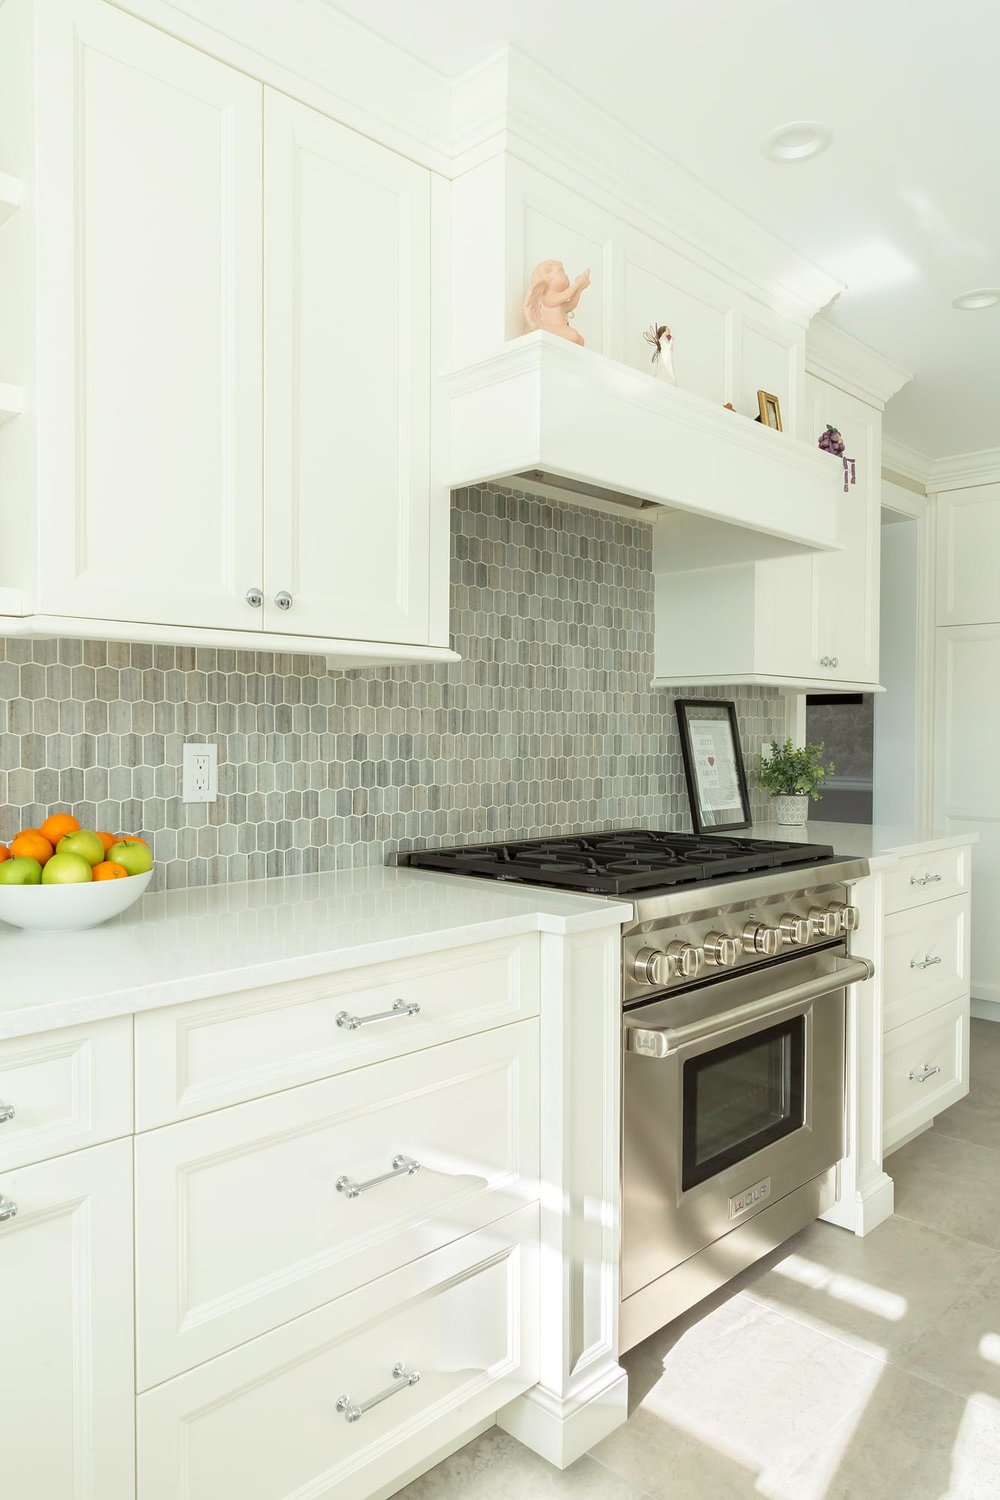 Transitional white kitchen with mantle hood and gray backsplash